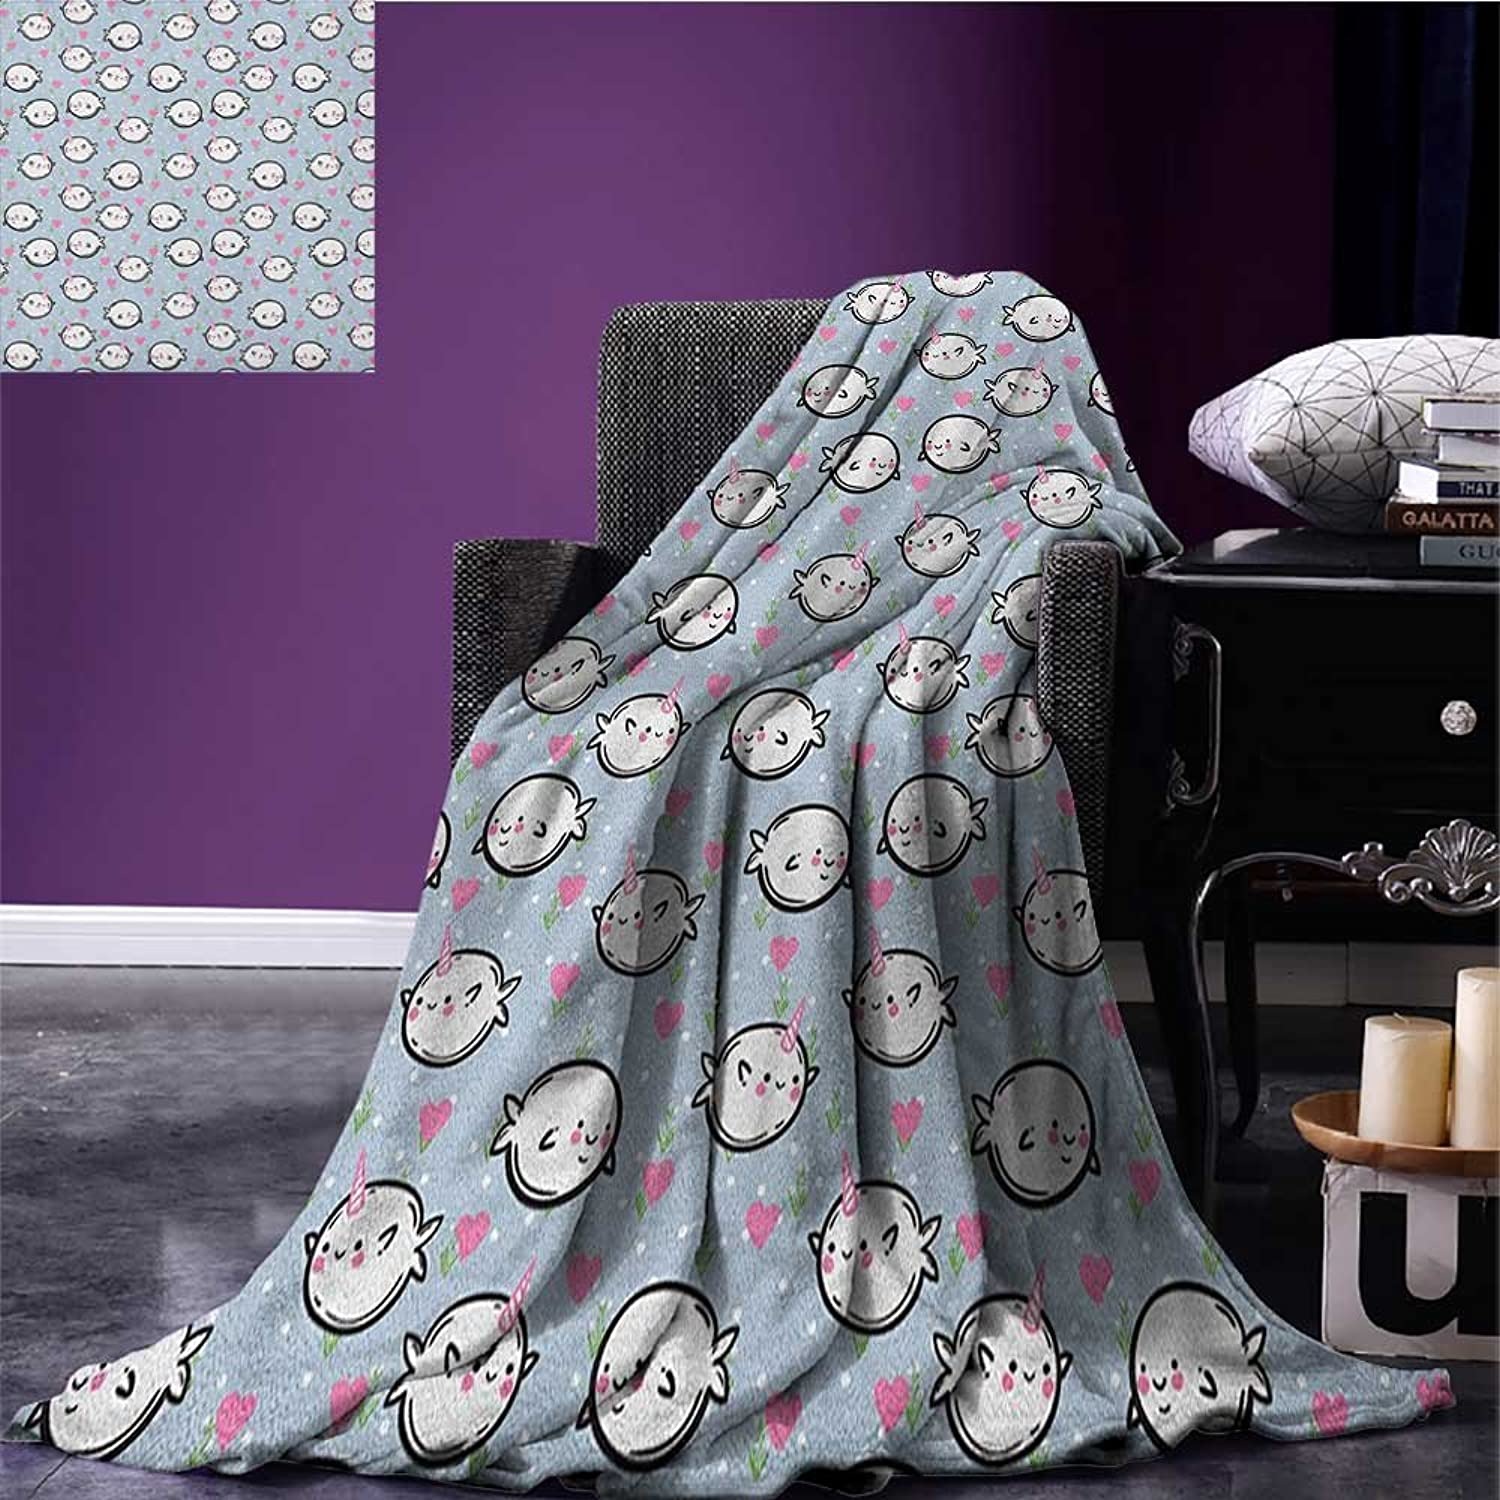 Narwhal Throw Blanket colorful Polka Dotted and Heart Pattern Background with Cartoon Character Whales Miracle Blanket Multicolor Size 59 x35.5